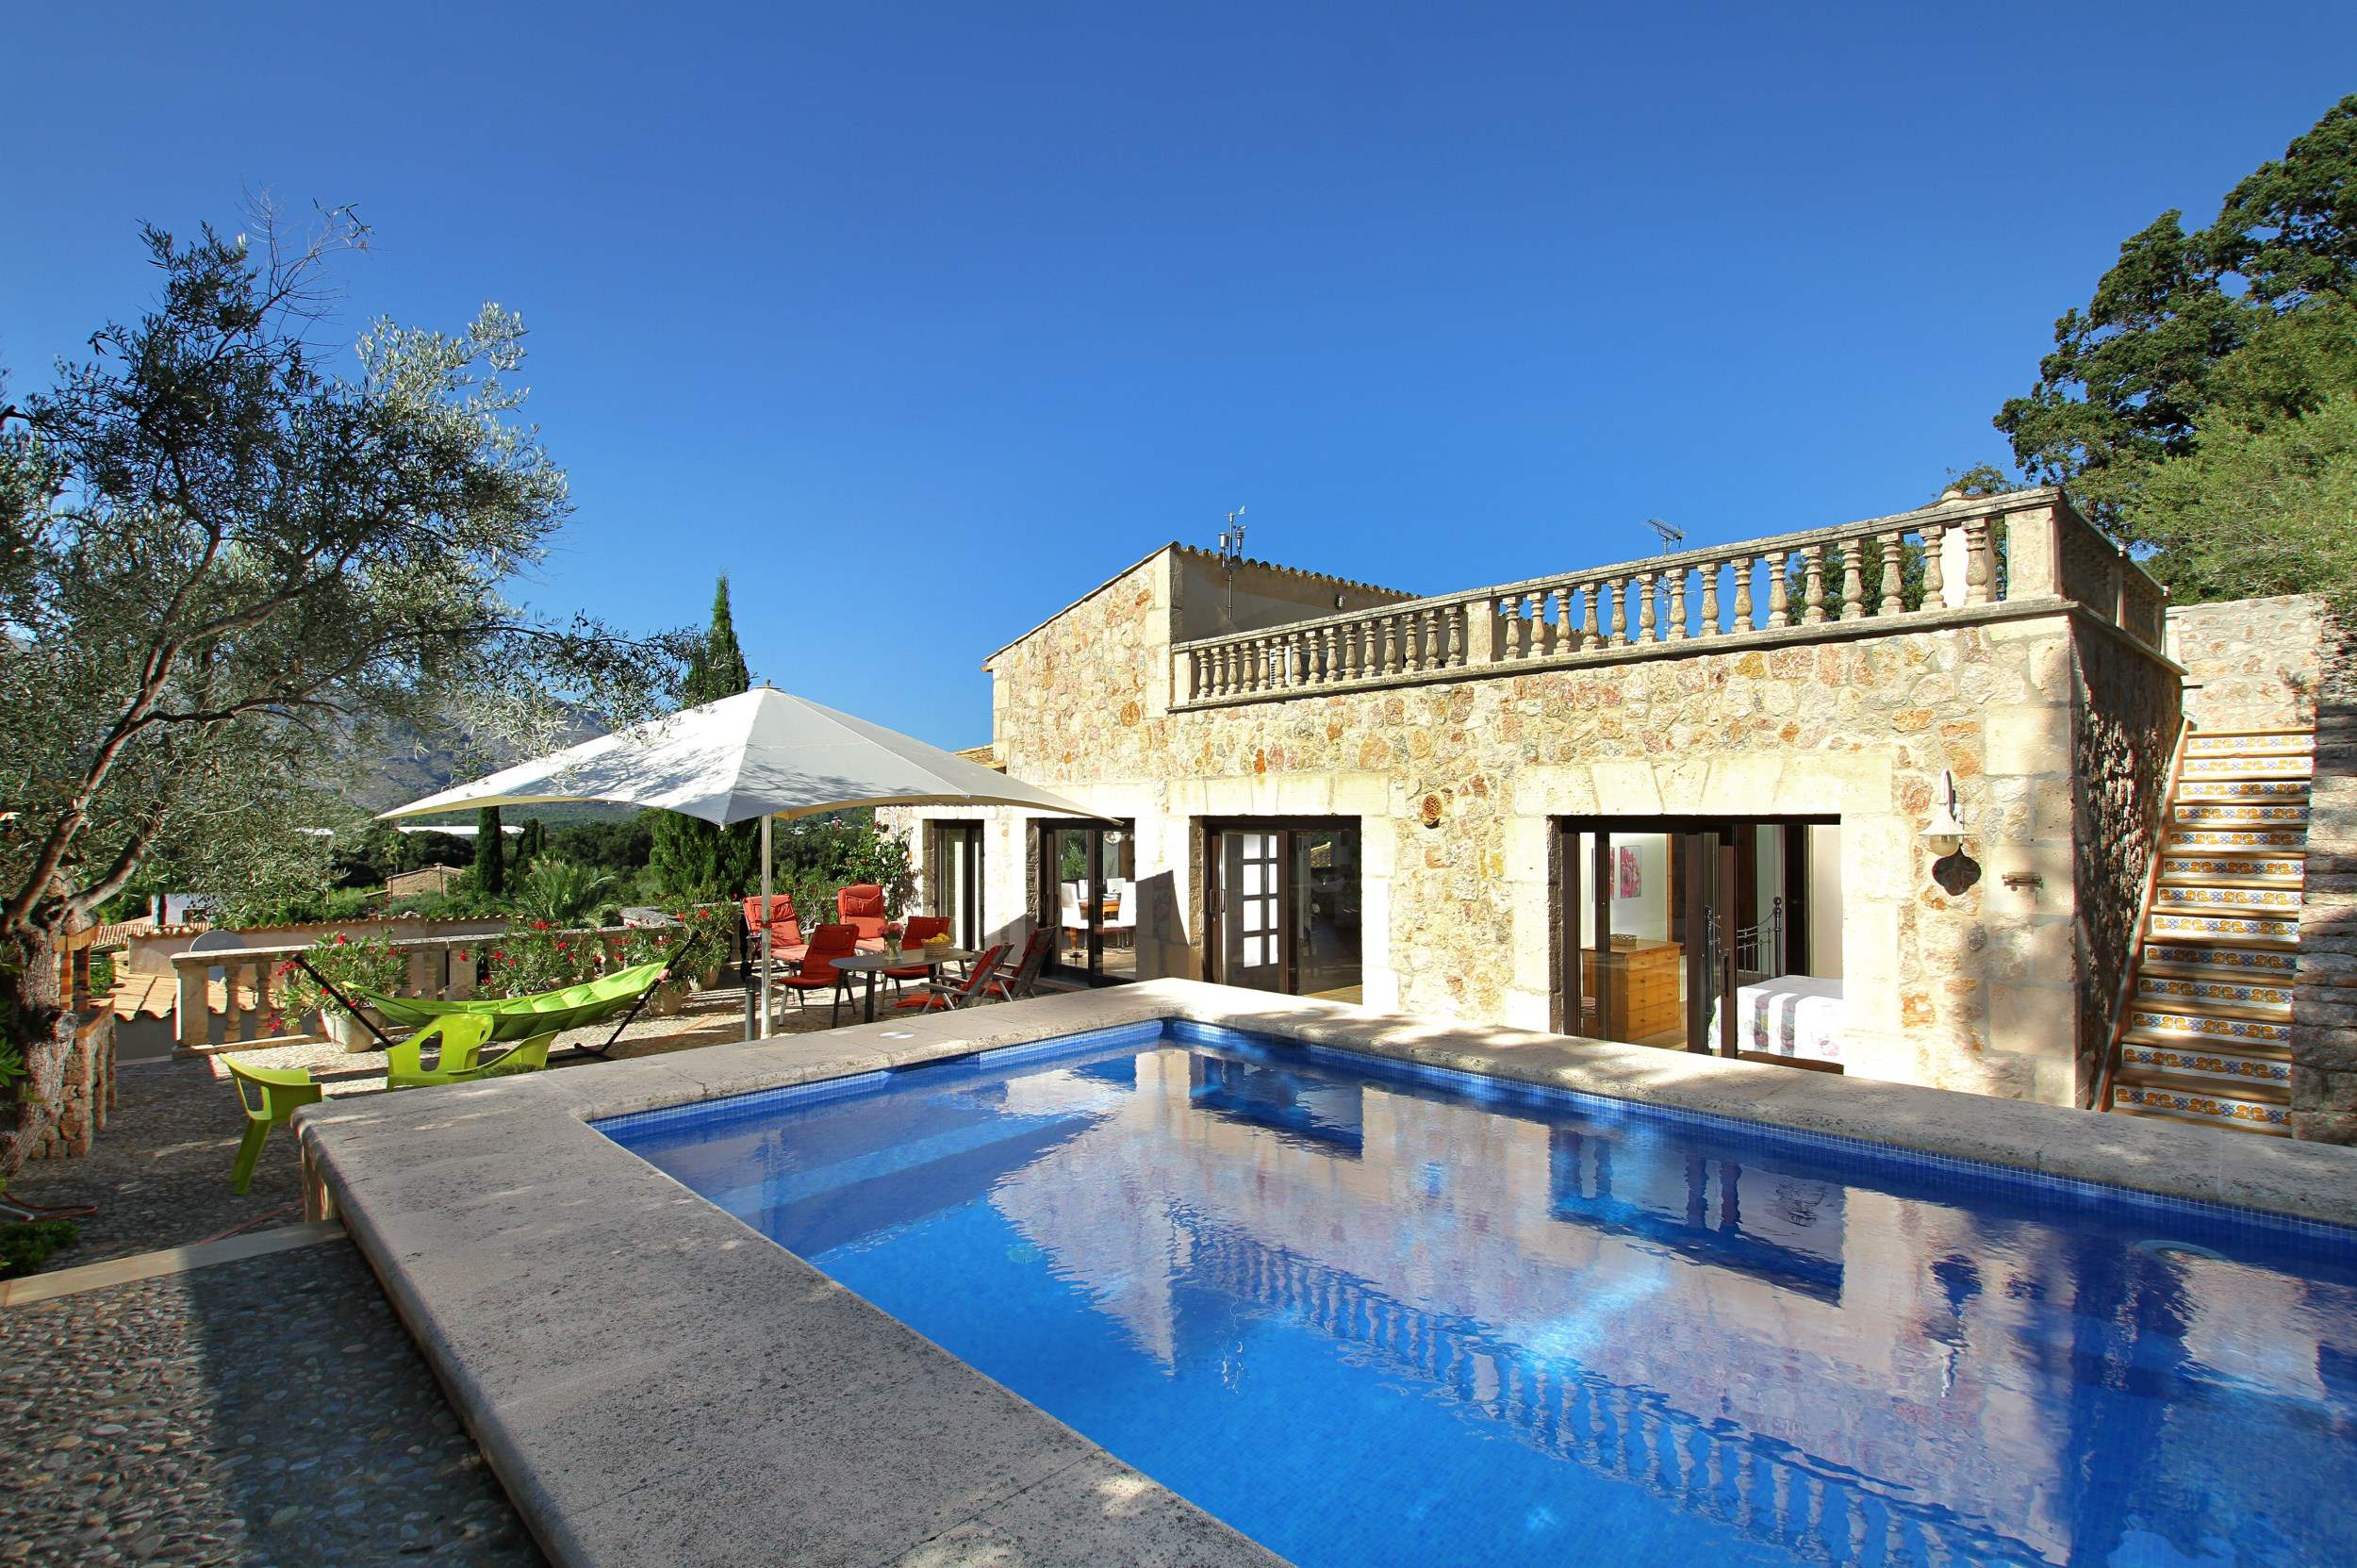 Villa Llop, 4 bedroom villa in Pollensa & Puerto Pollensa , Majorca Photo #1